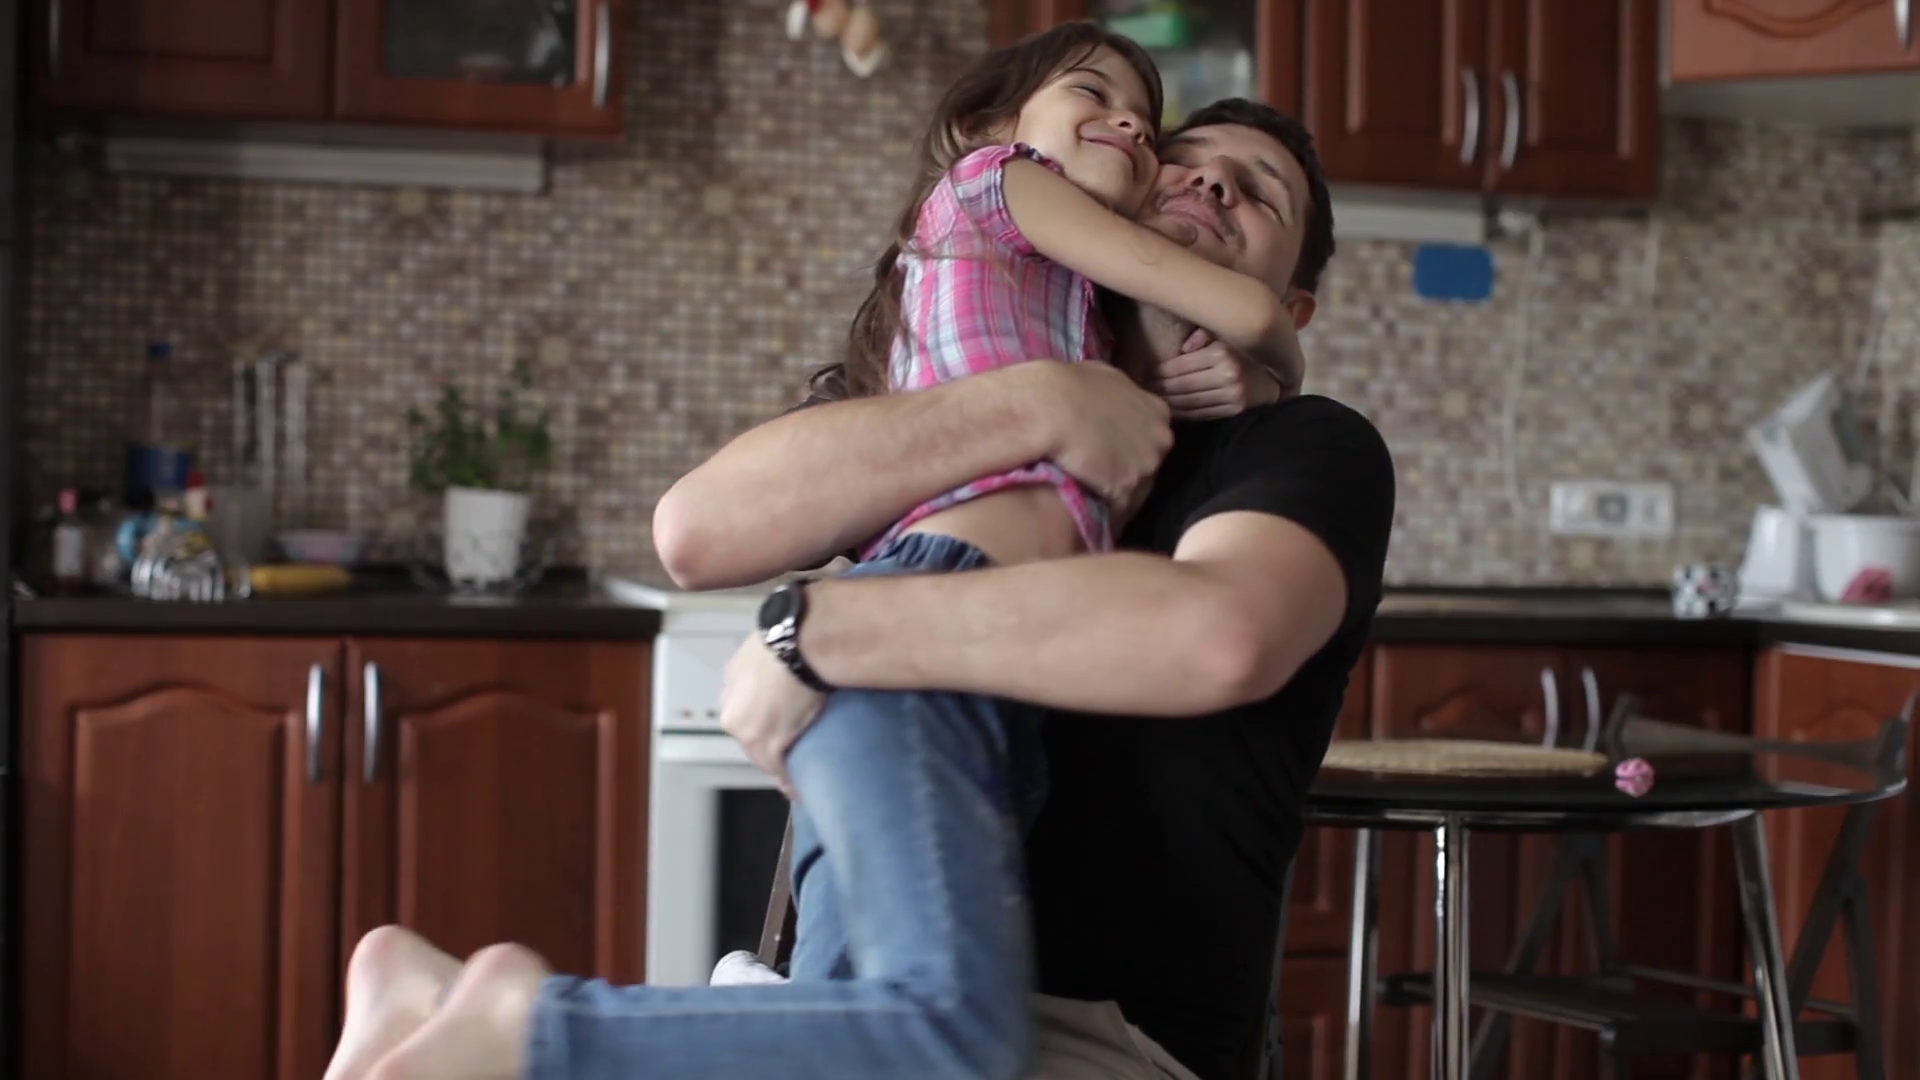 Dad Hugs His daughter(娘), Family, Love Stock Video Footage - Storyblocks